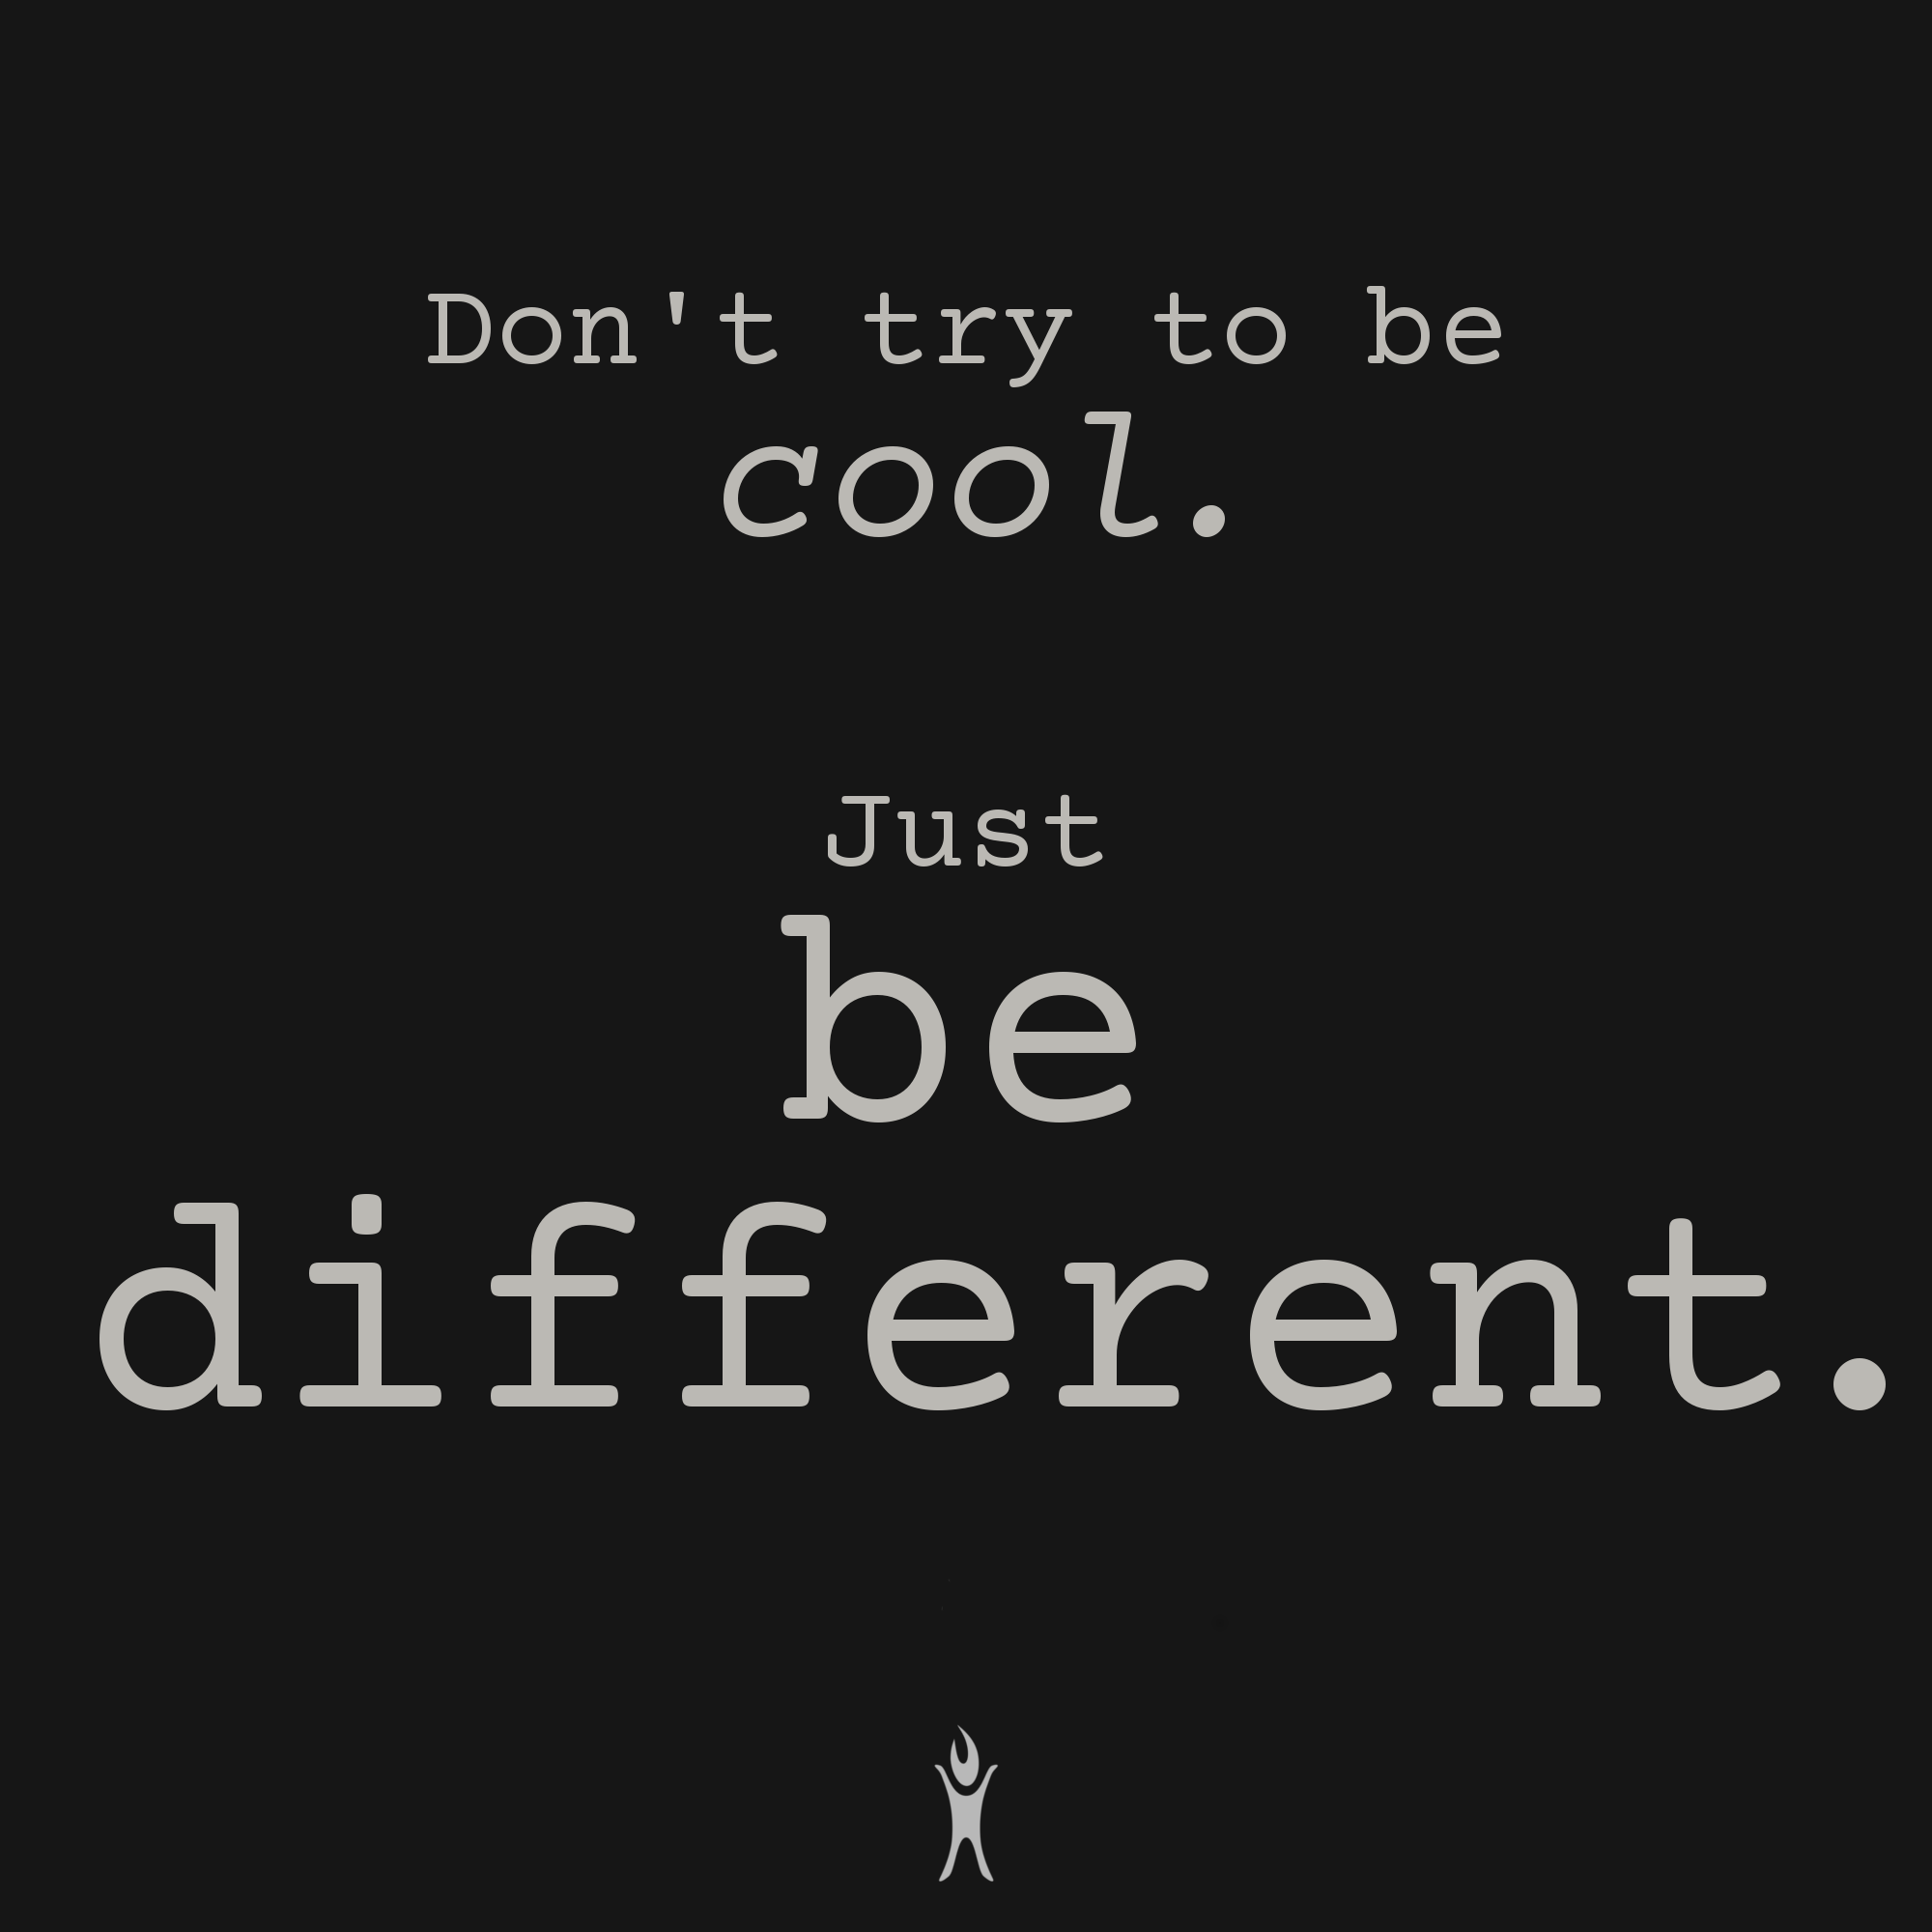 Don't try to be cool. Just be different.